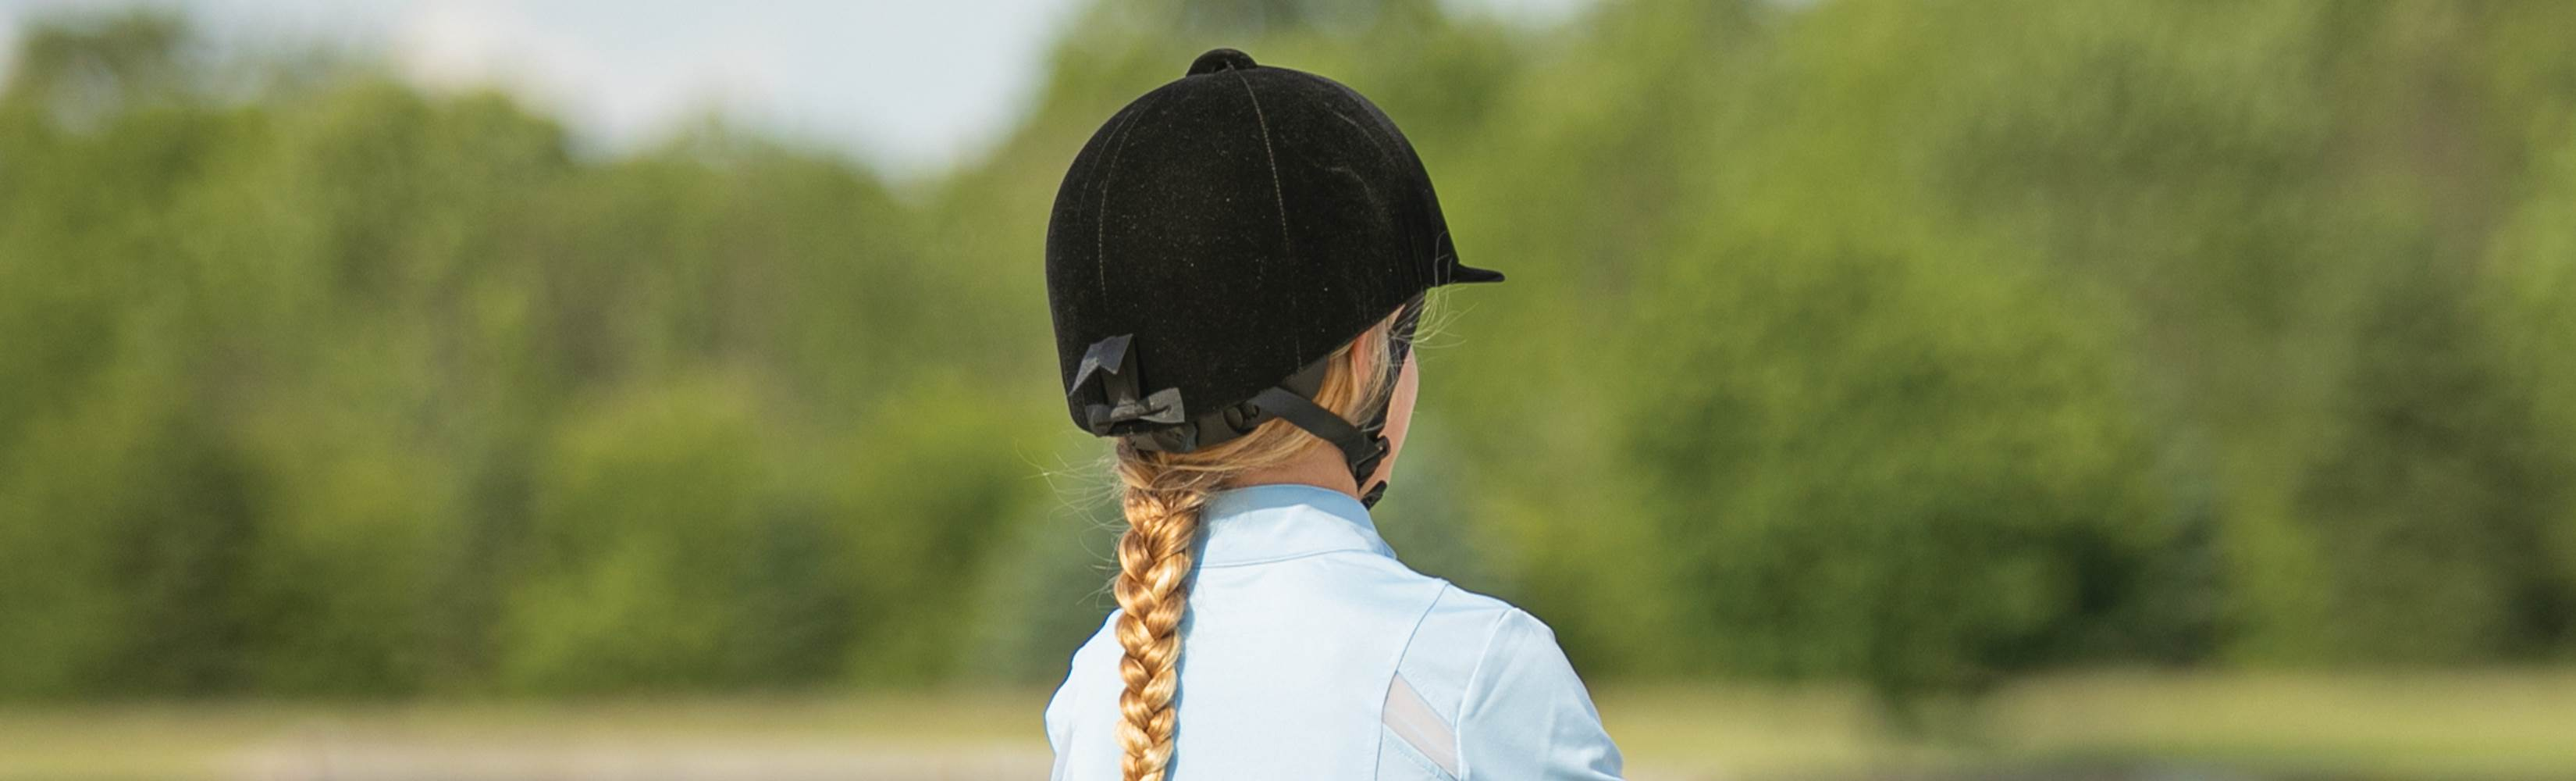 Choosing the Right Riding Helmet - Adjustable vs. Fixed Size